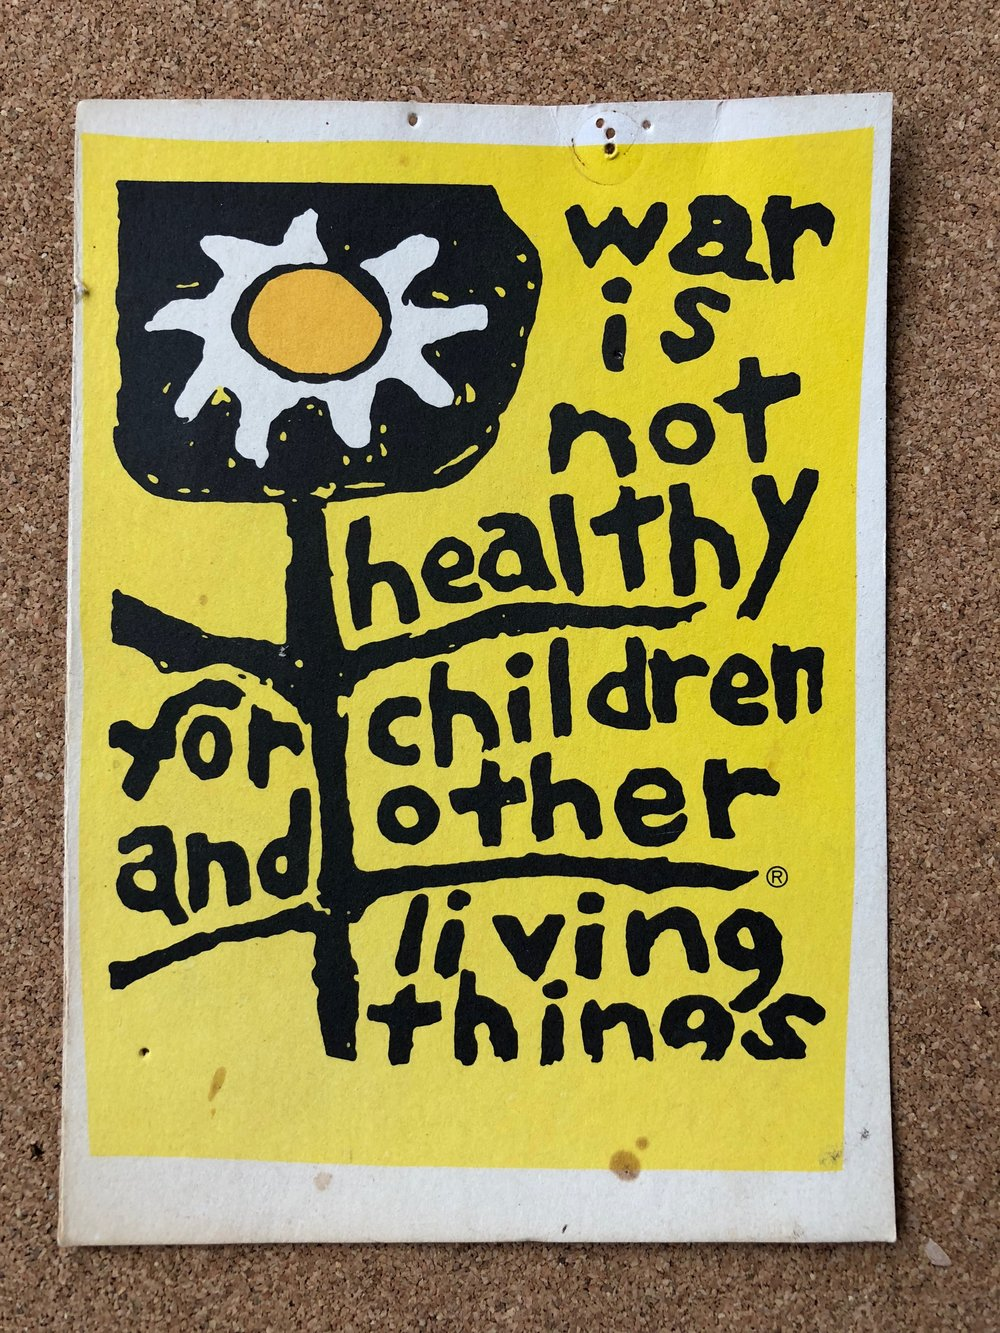 War is not healthy for children and other living things.